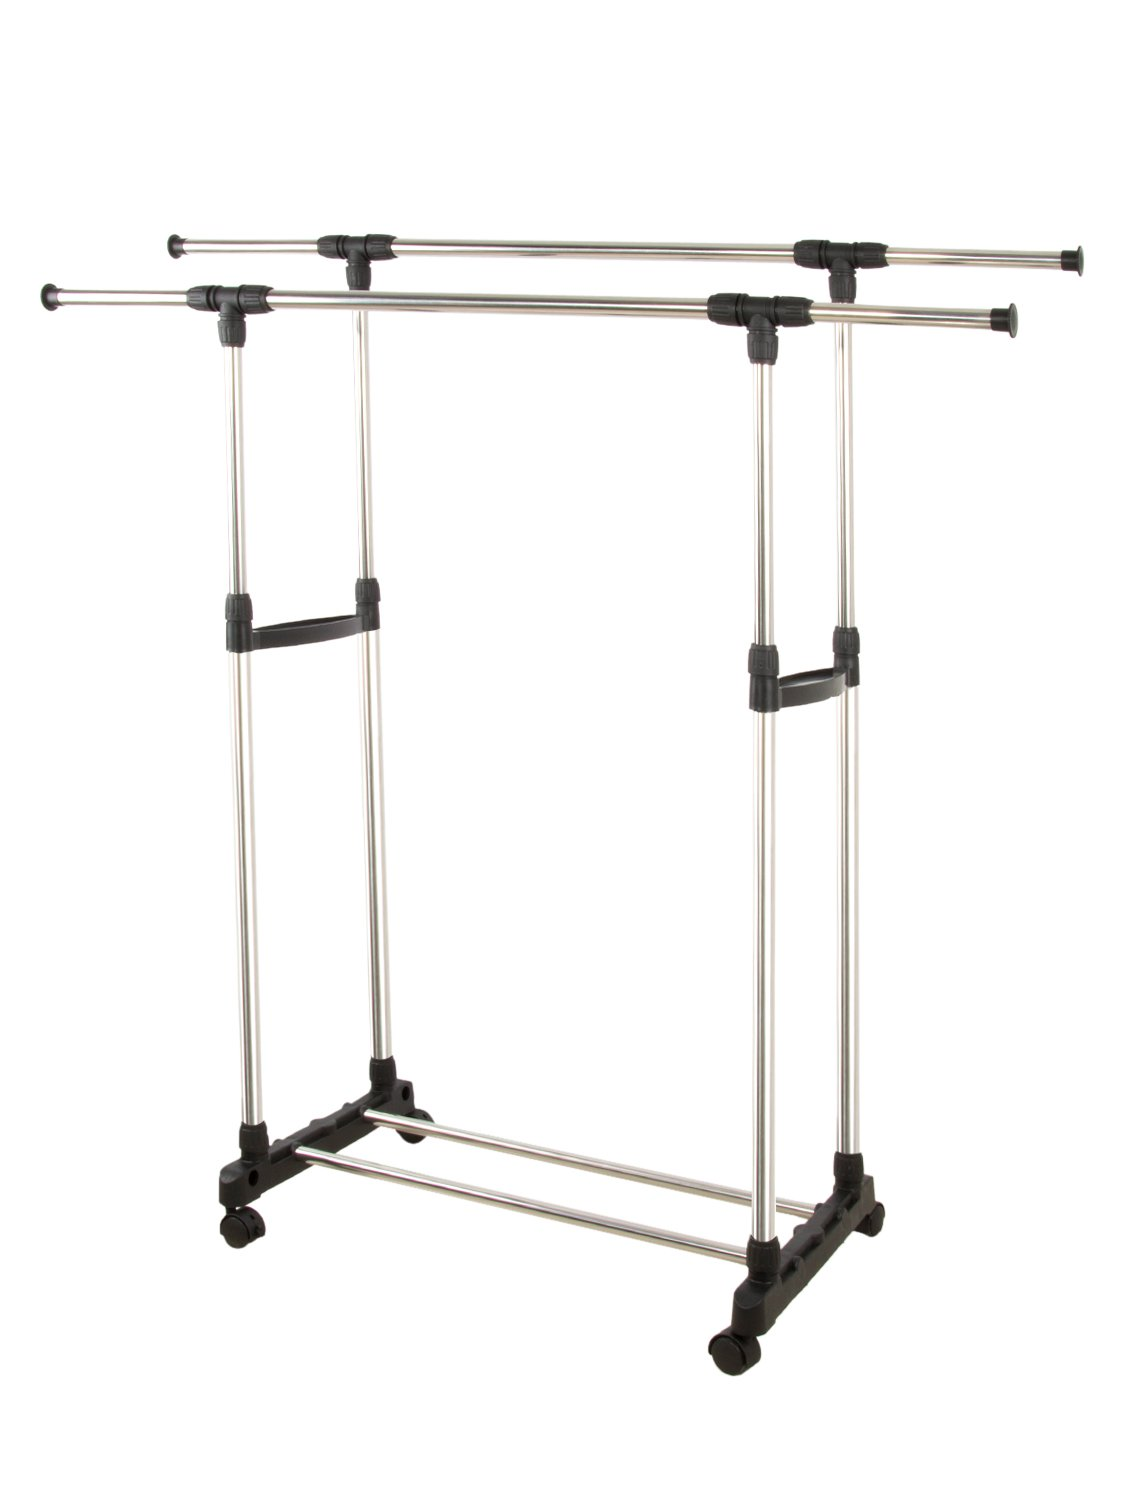 Clothes Garment Rack on Wheels Metal Portable Modern Storage Multiple Shelf Rolling Extendable Organizer,2 rods by CHOiES record your inspired fashion